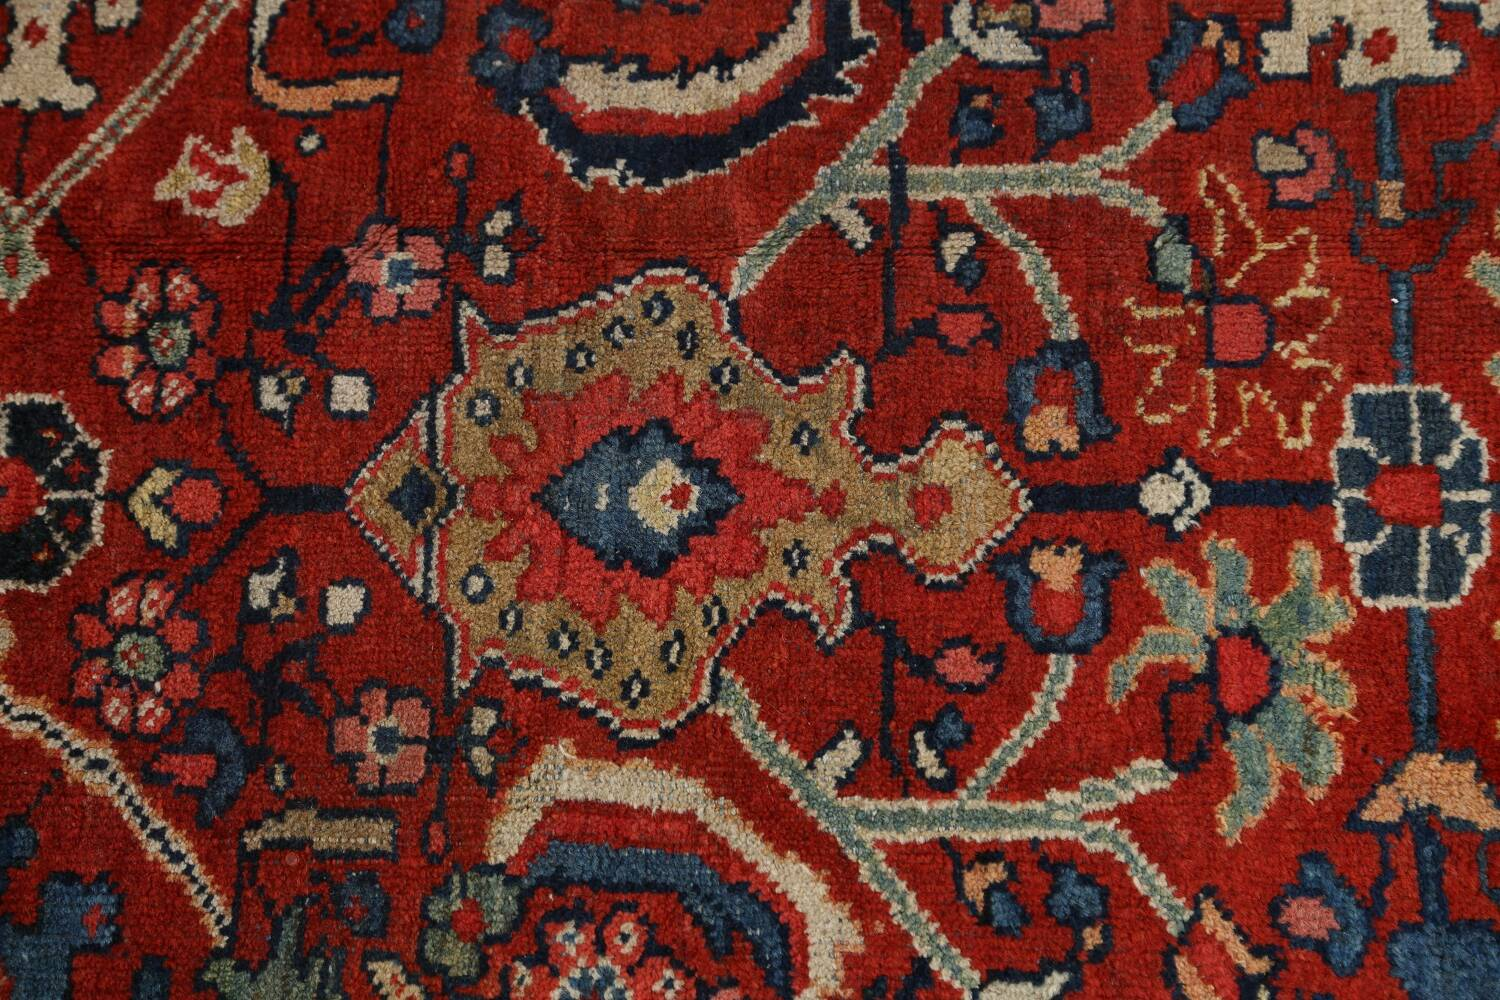 Antique Vegetable Dye Sultanabad Persian Area Rug 9x12 image 10